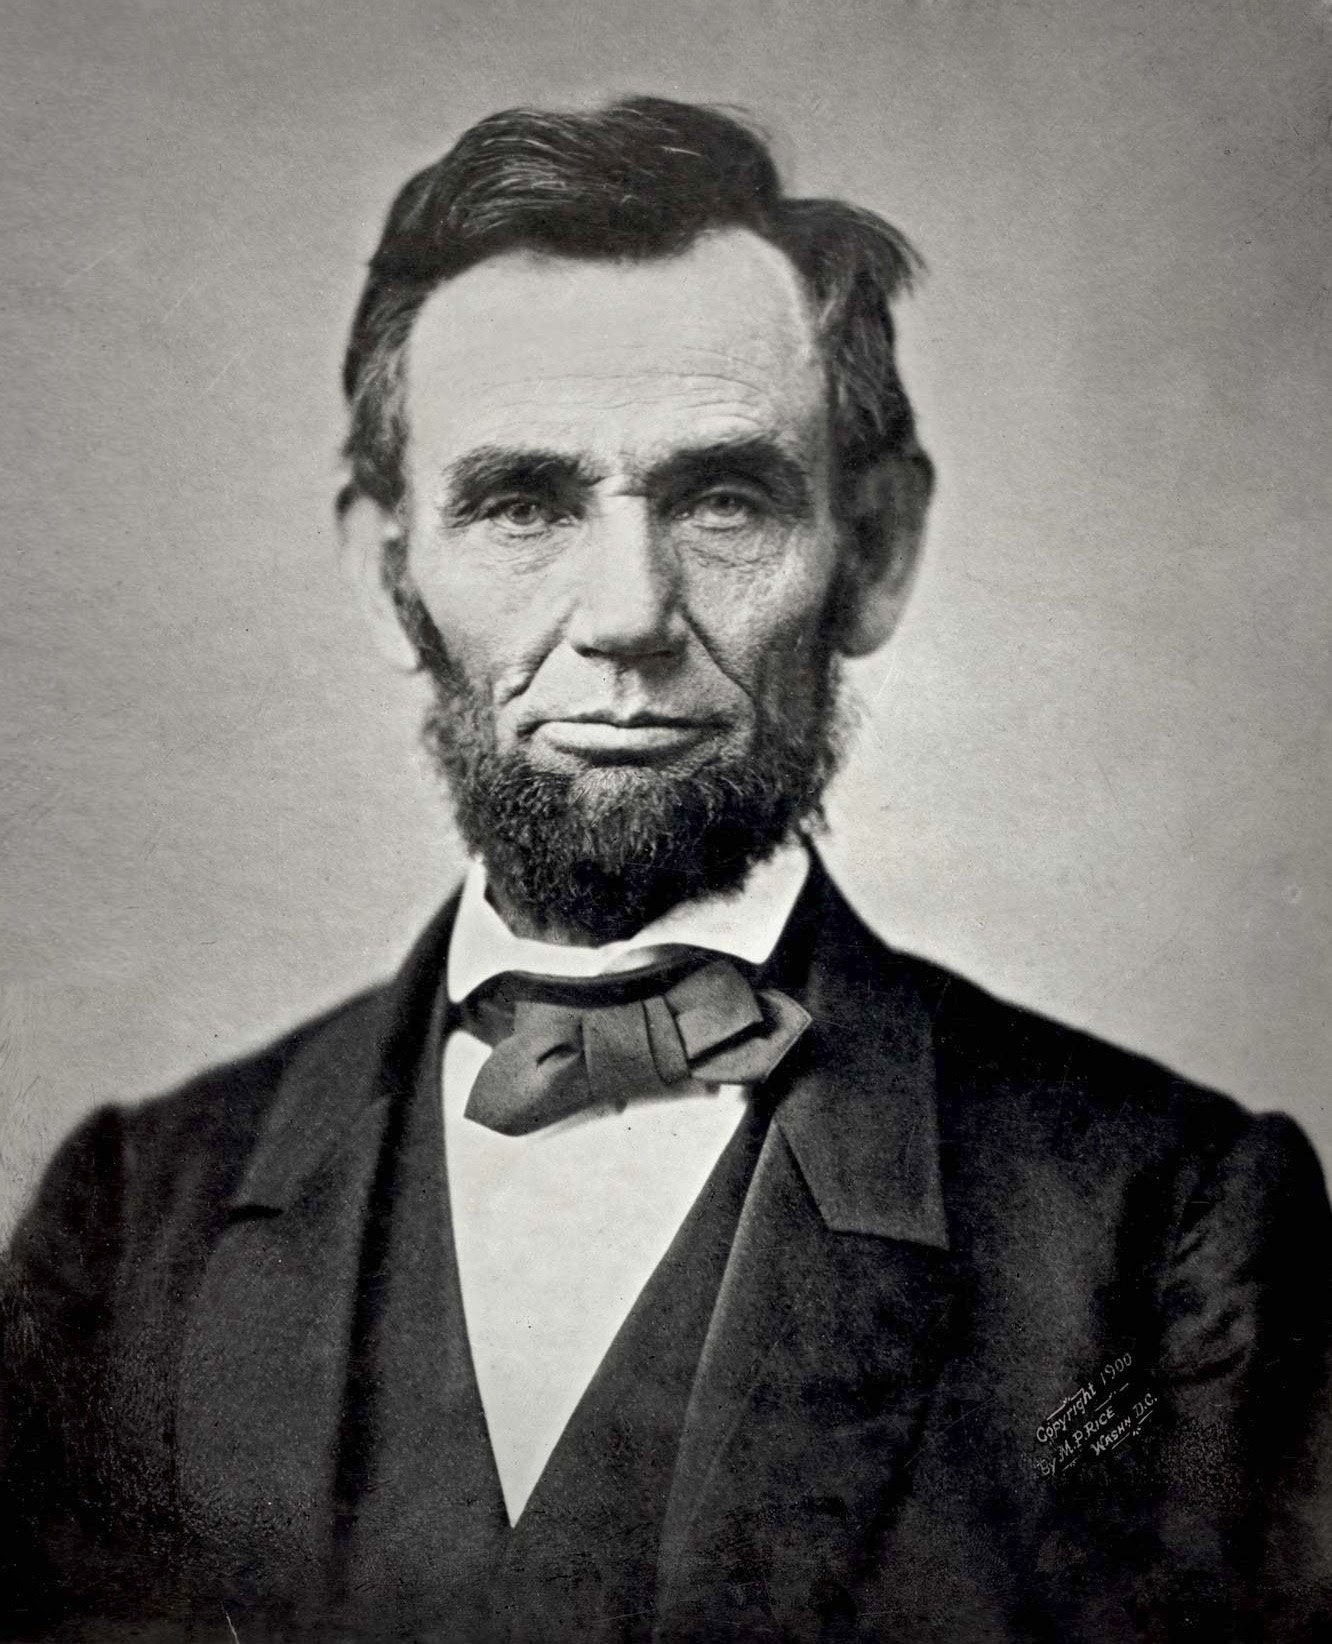 http://upload.wikimedia.org/wikipedia/commons/1/1b/Abraham_Lincoln_November_1863.jpg